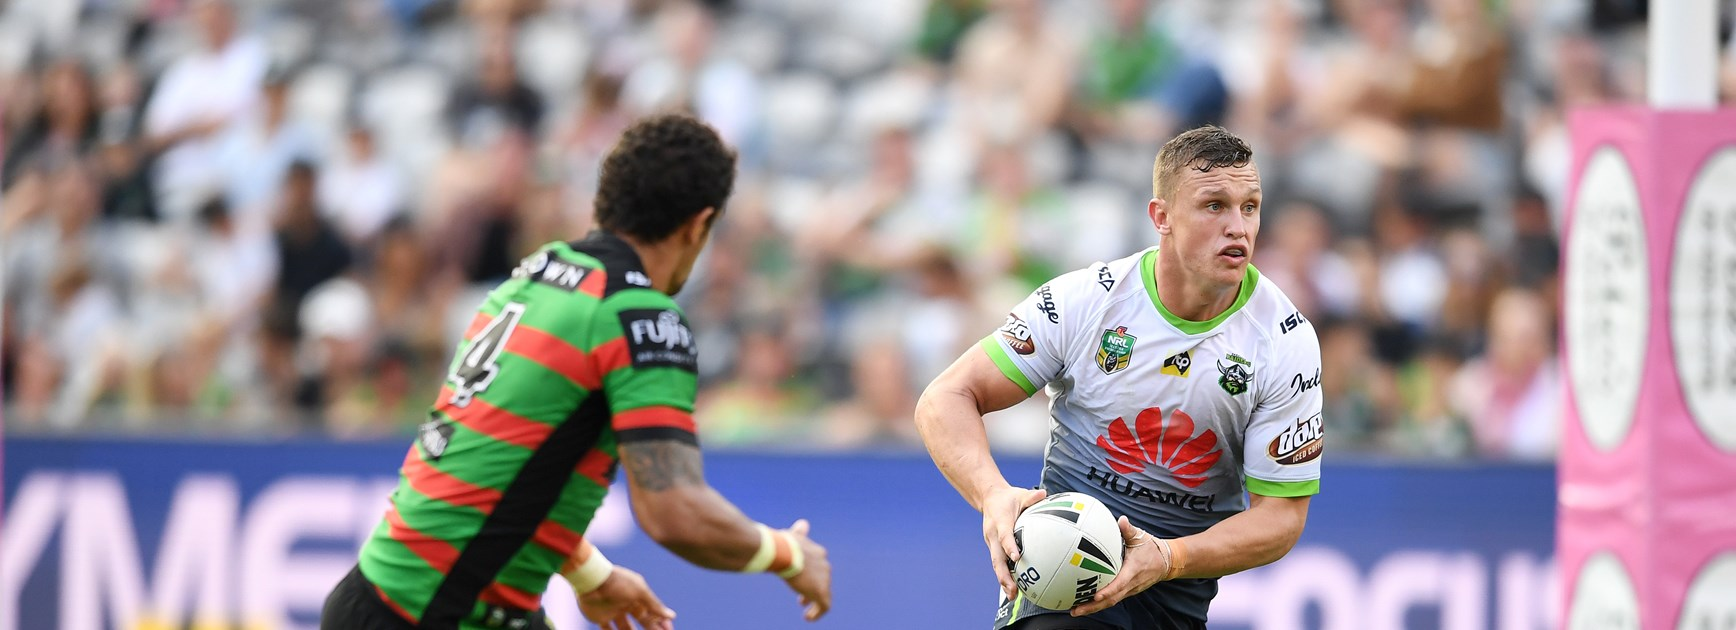 By the numbers: Raiders v Rabbitohs